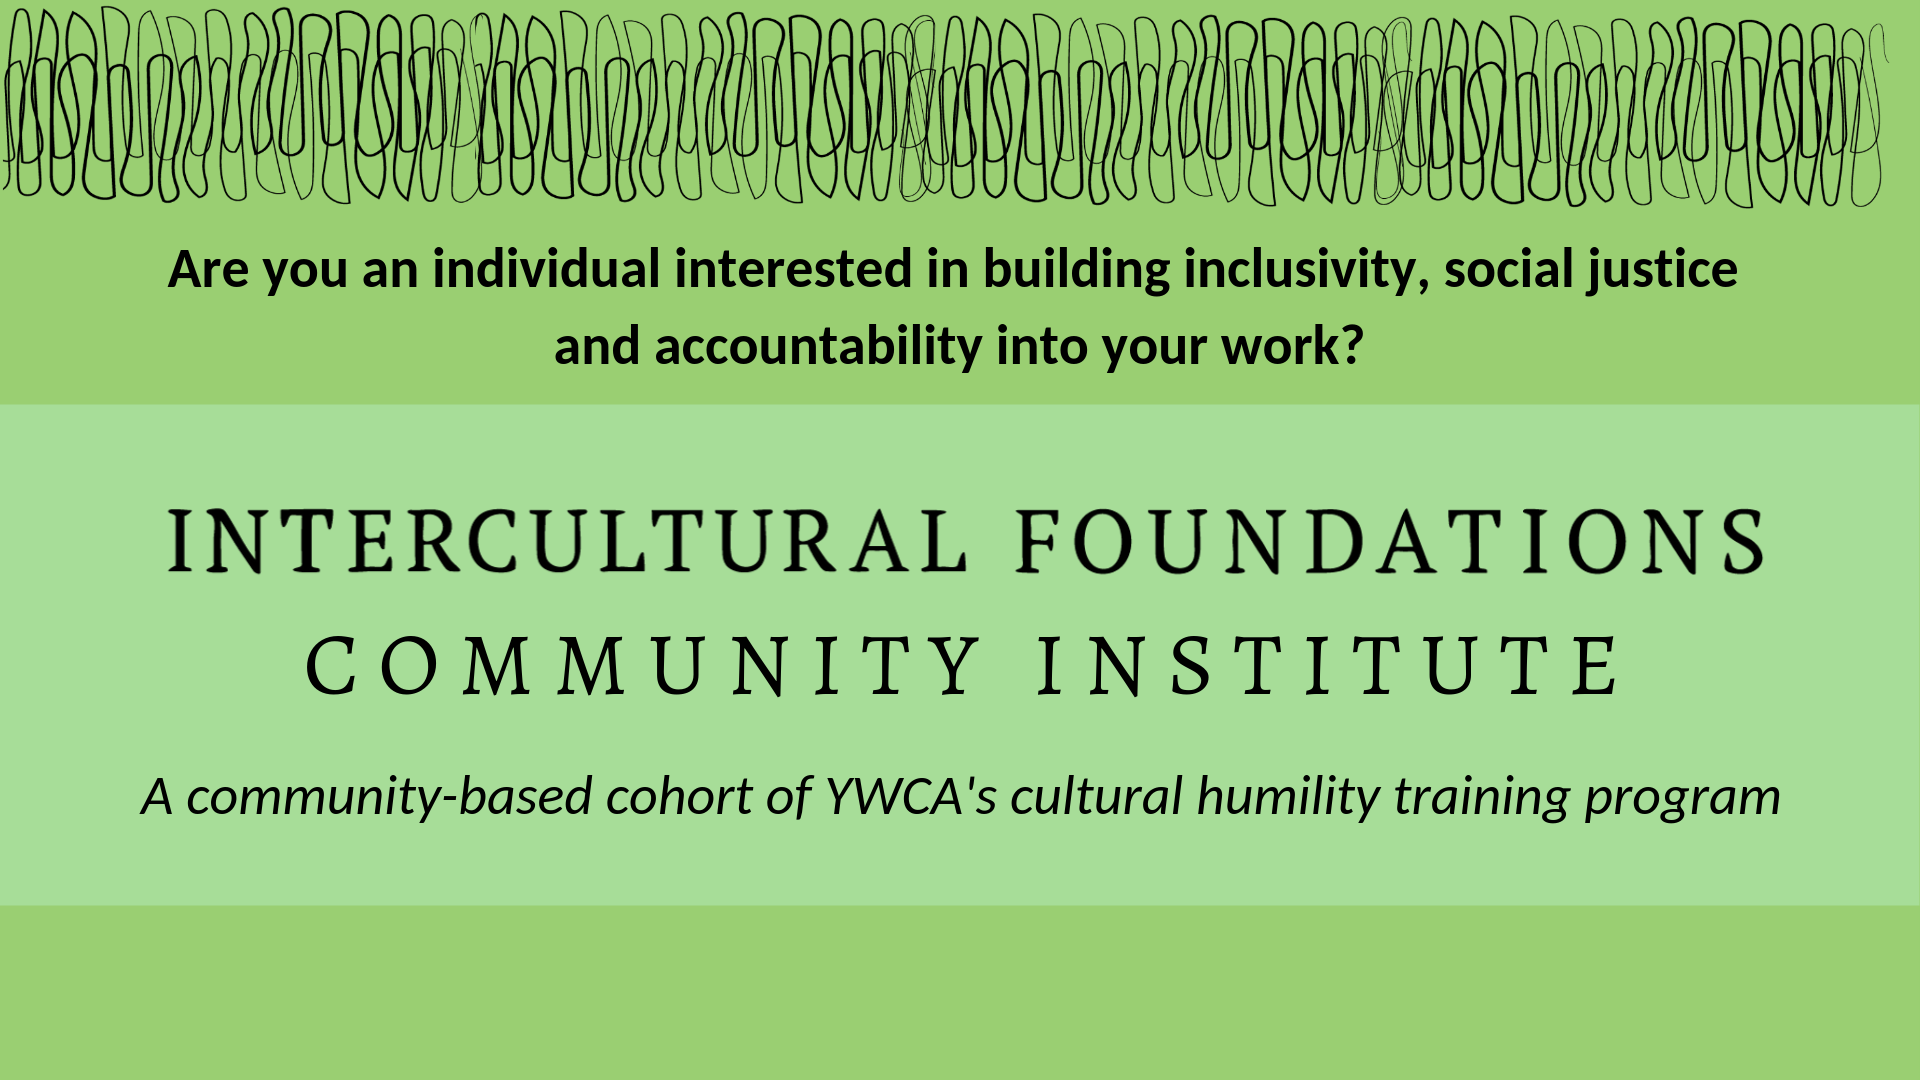 October 19: Intercultural Foundations Community Institute Info Session @ YWCA Olympia